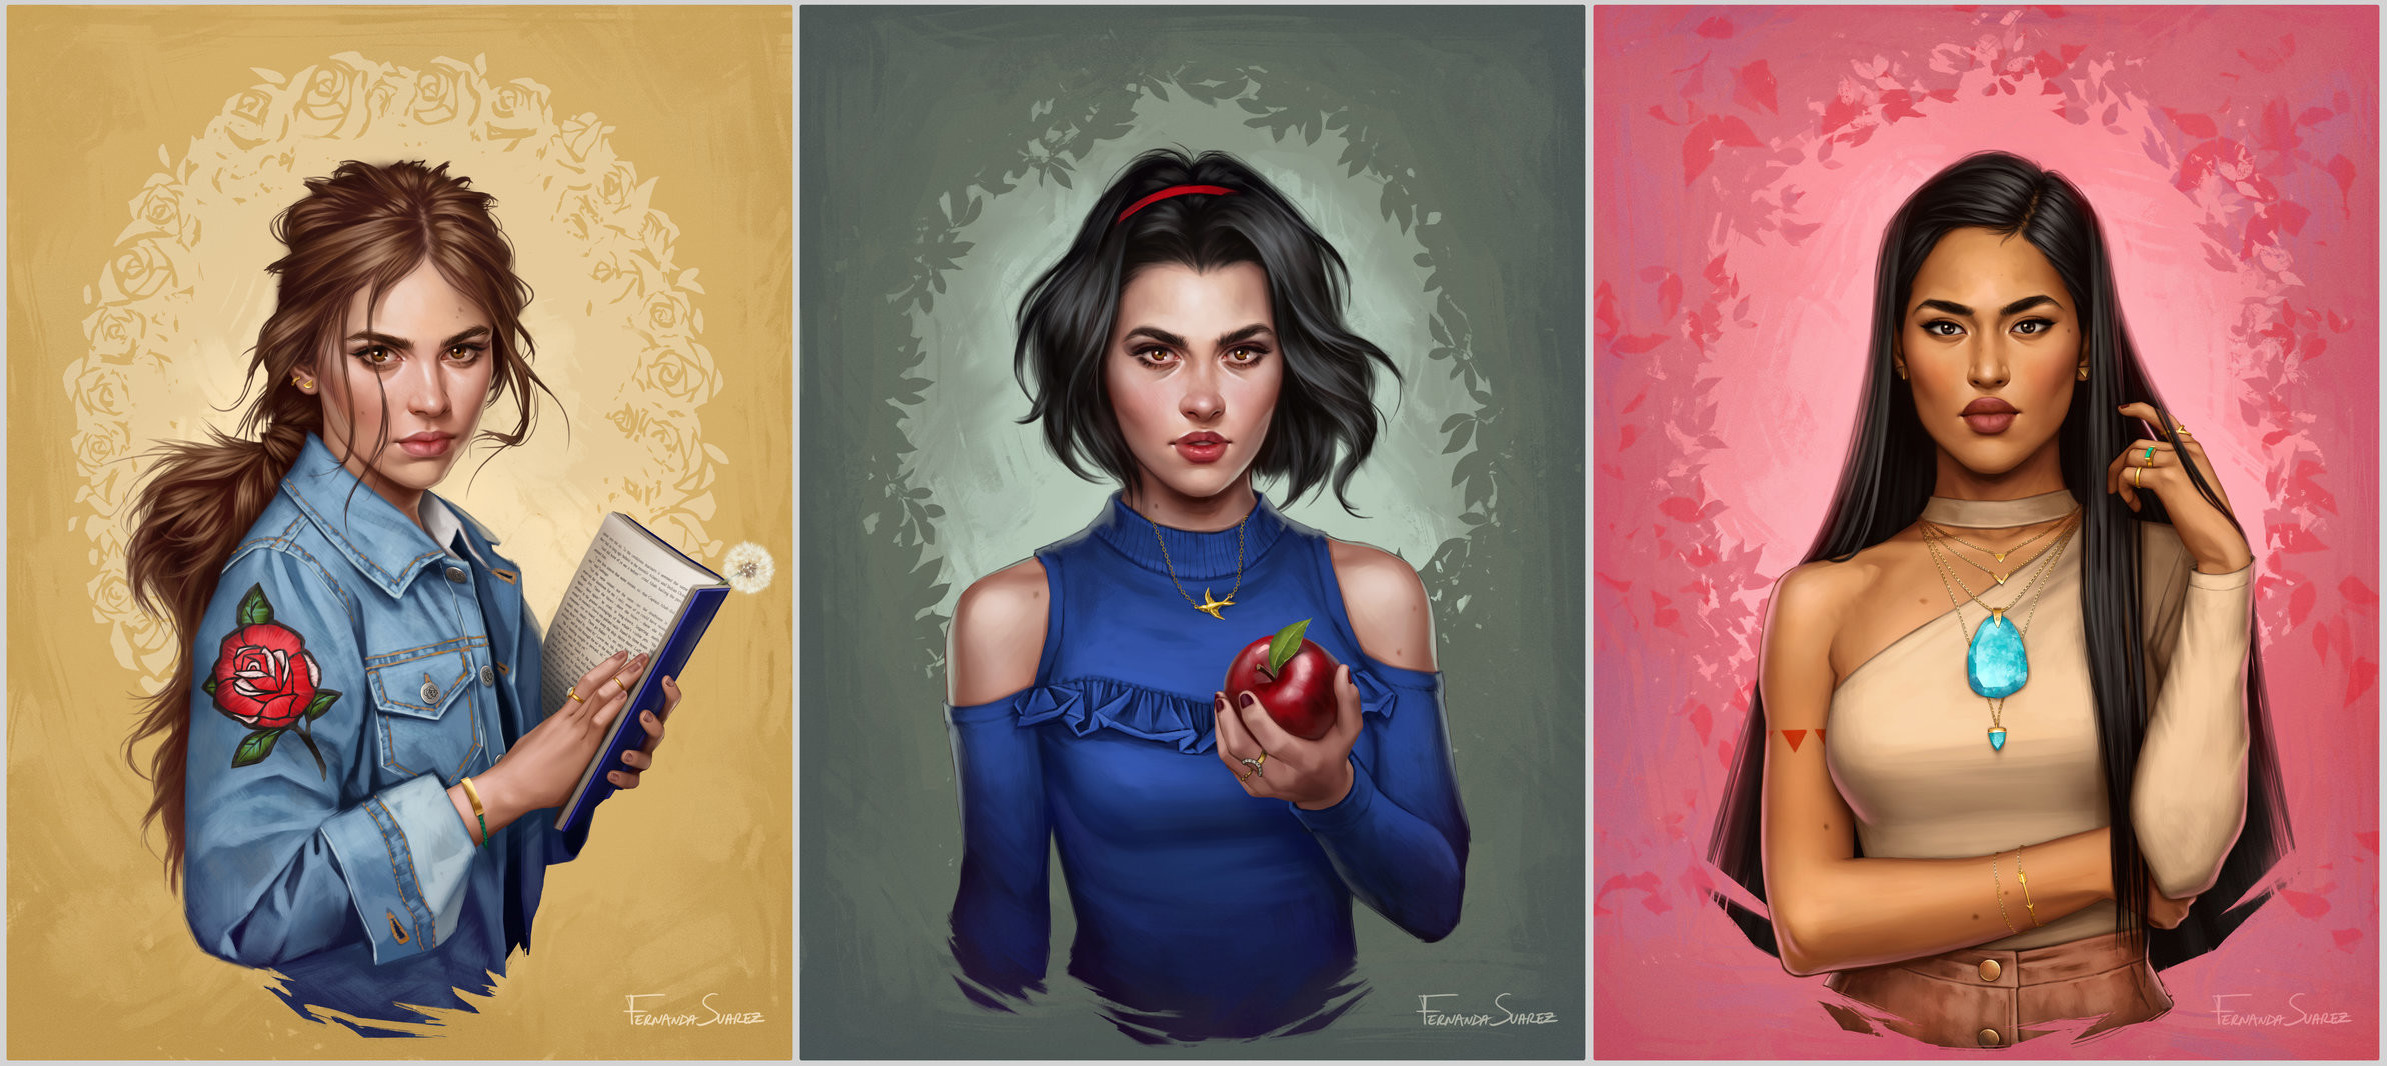 is this is what disney princesses would look like in